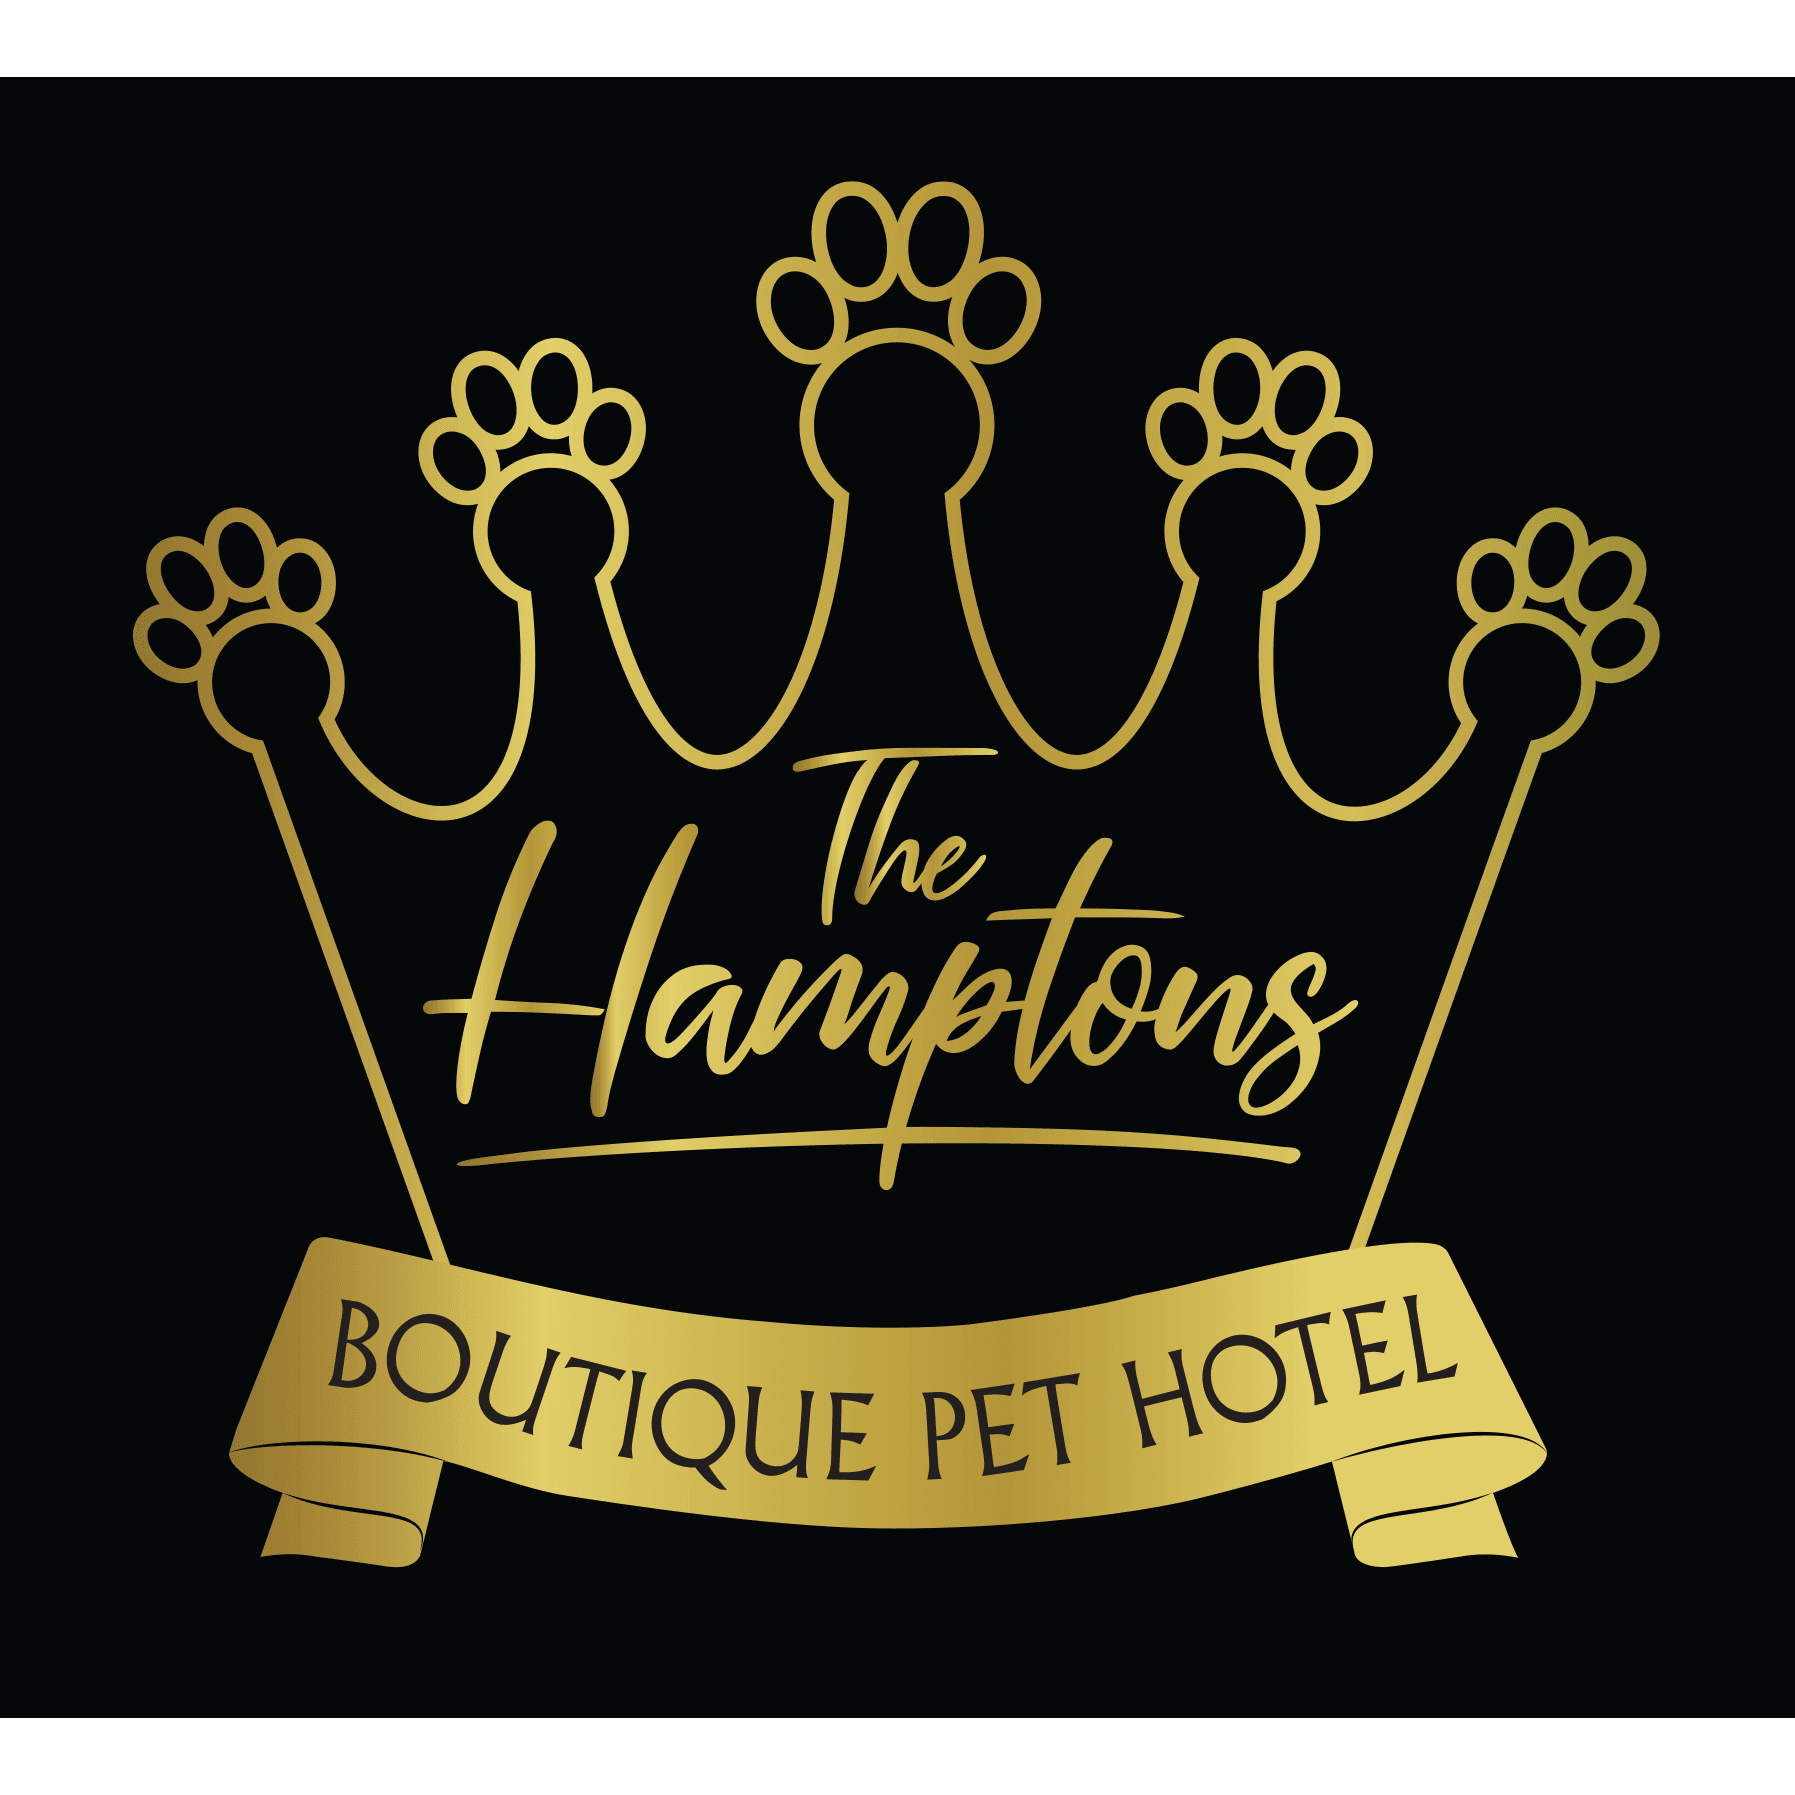 The Hamptons Boutique Pet Hotel - Solihull, West Midlands B92 0AS - 07951 819273 | ShowMeLocal.com